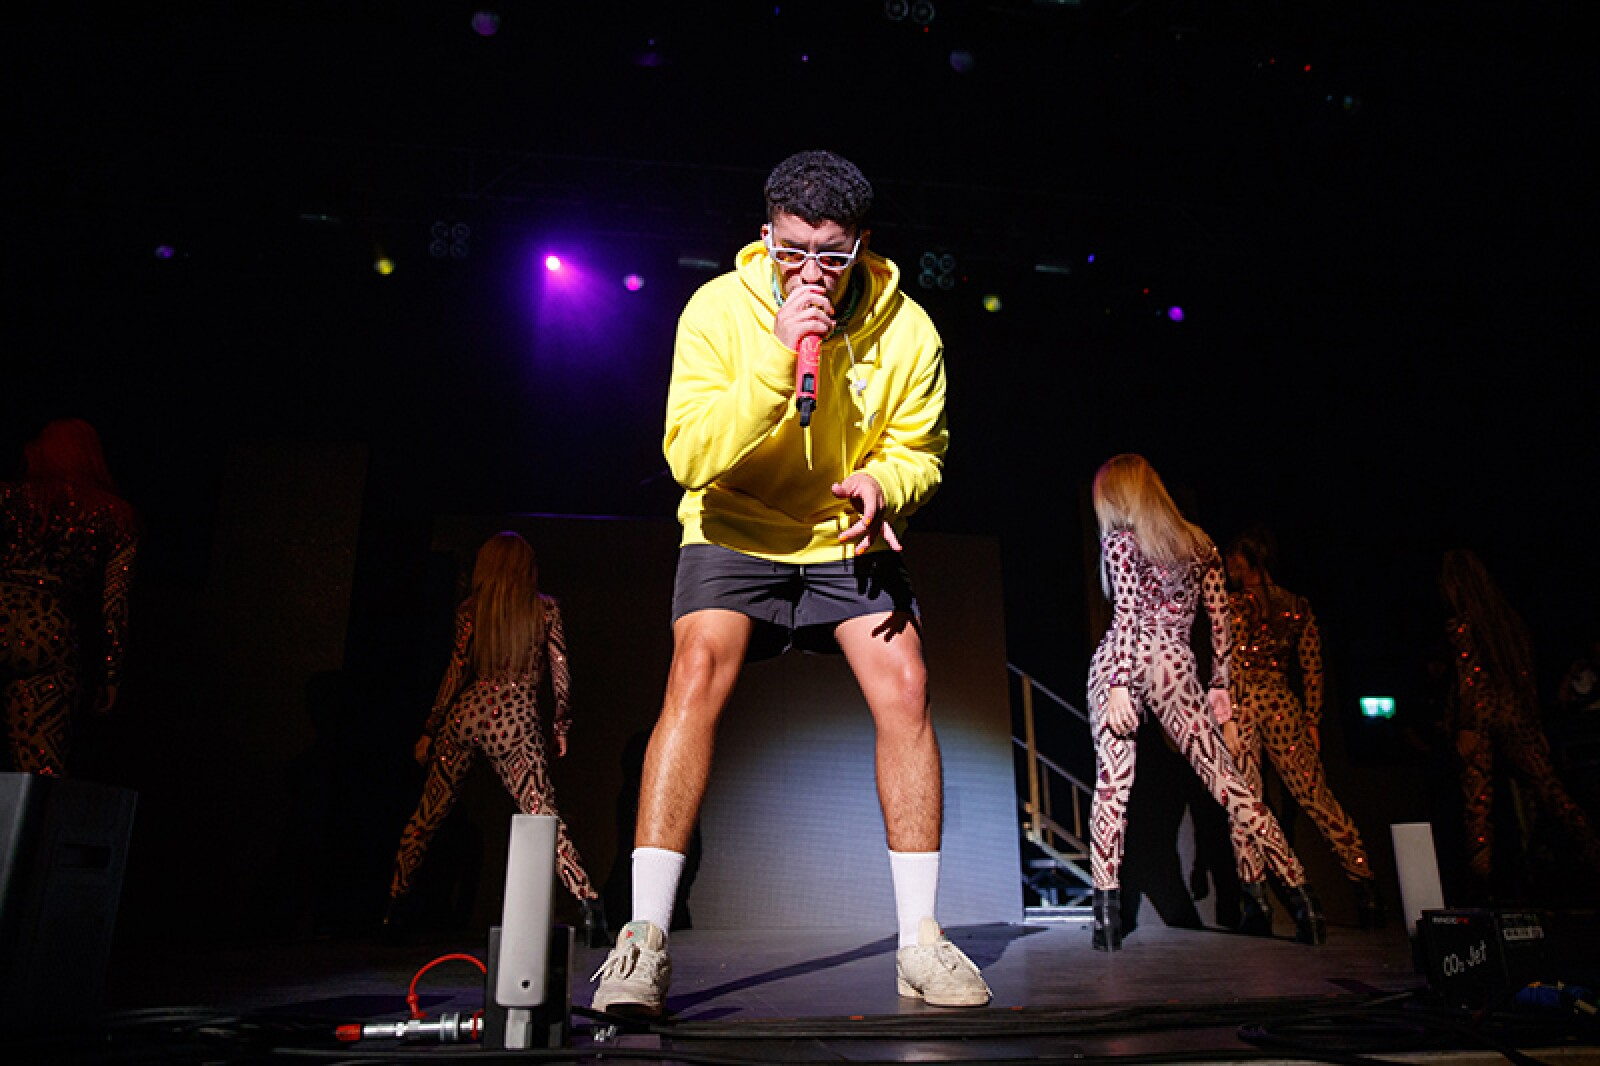 Bad Bunny Performs At O2 Forum Kentish Town